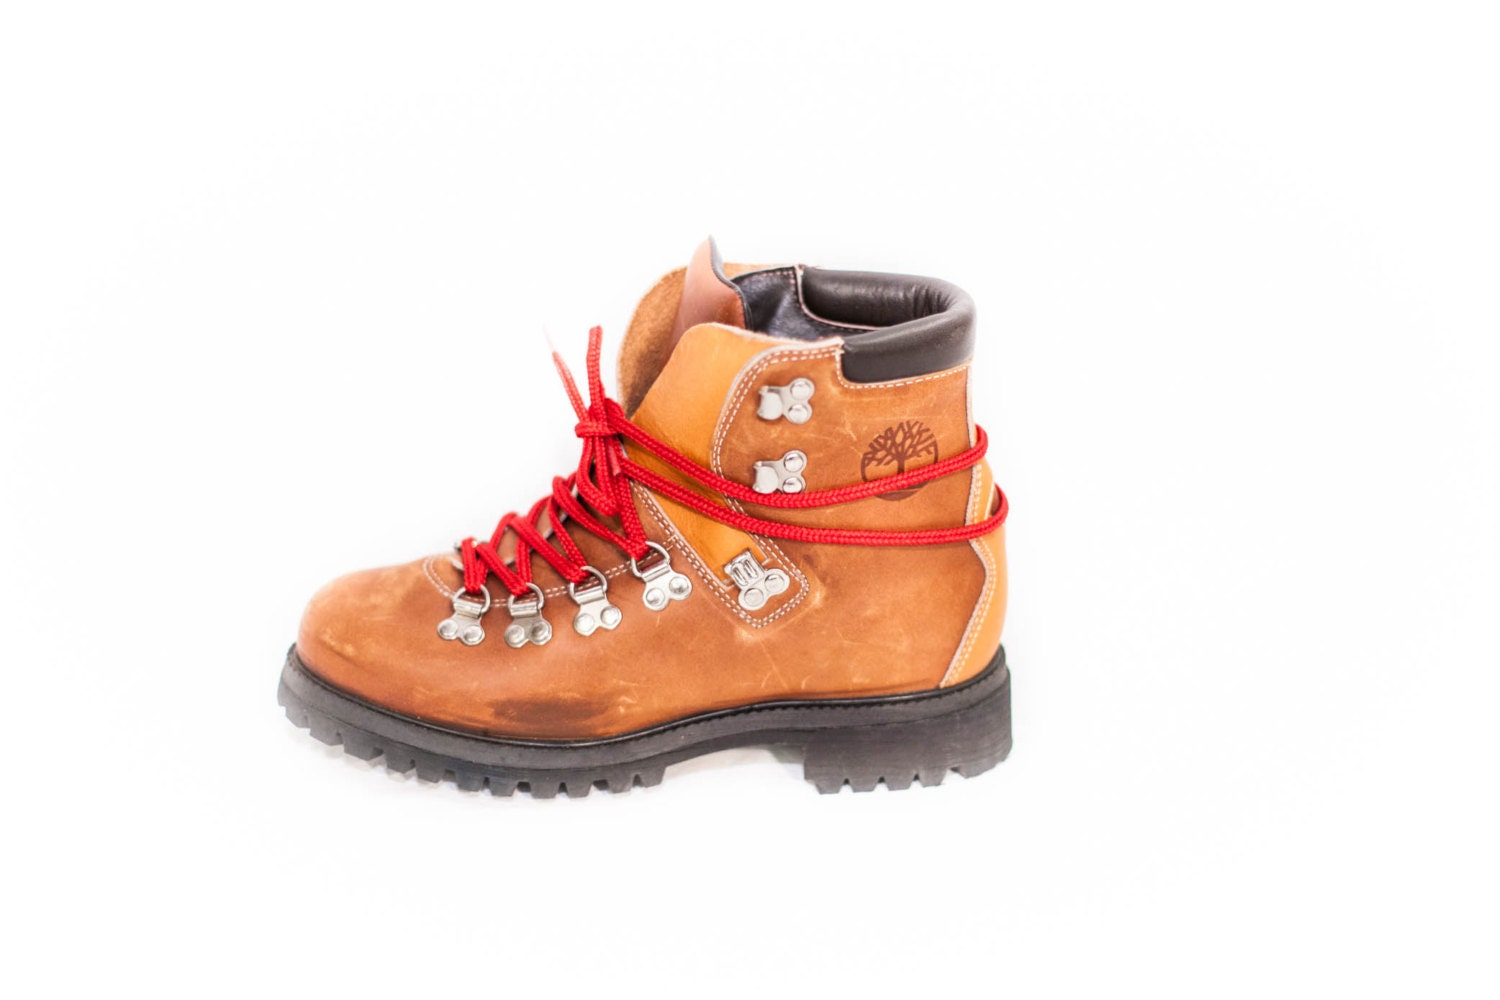 women's Timberland caramel brown leather hiking boots red